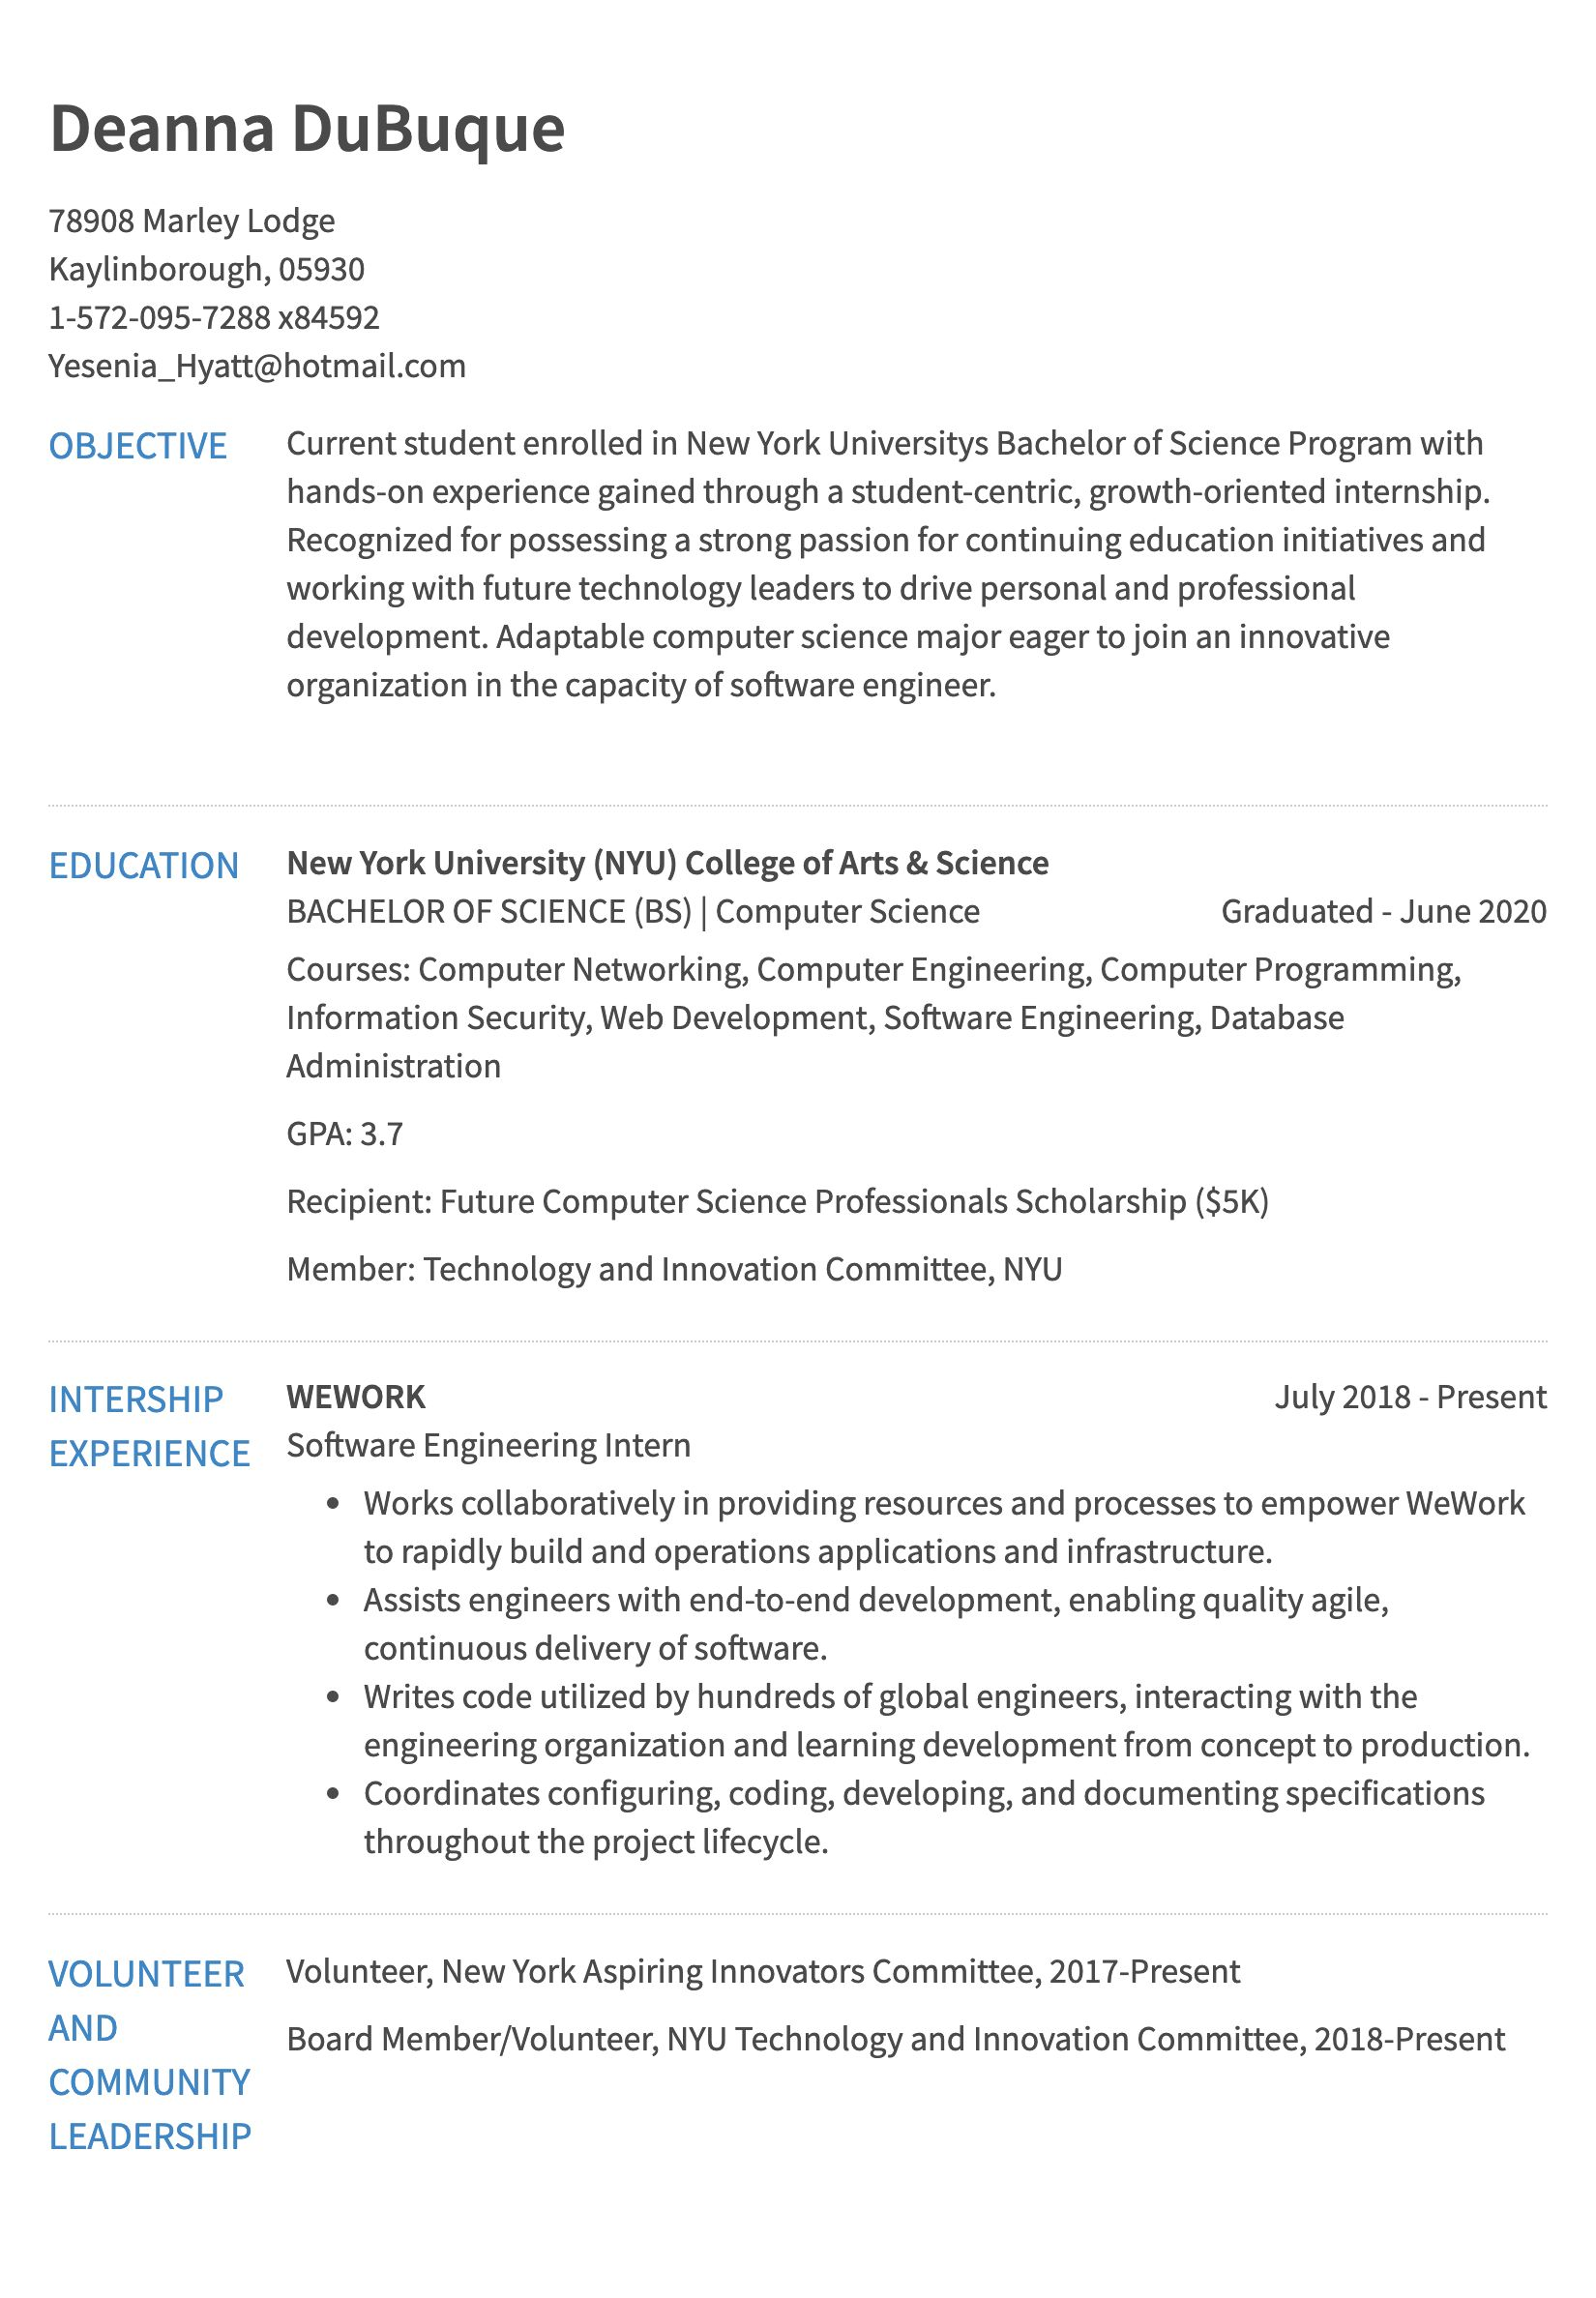 internship resume example continuing education on years of exp for office clerk position Resume Continuing Education On Resume